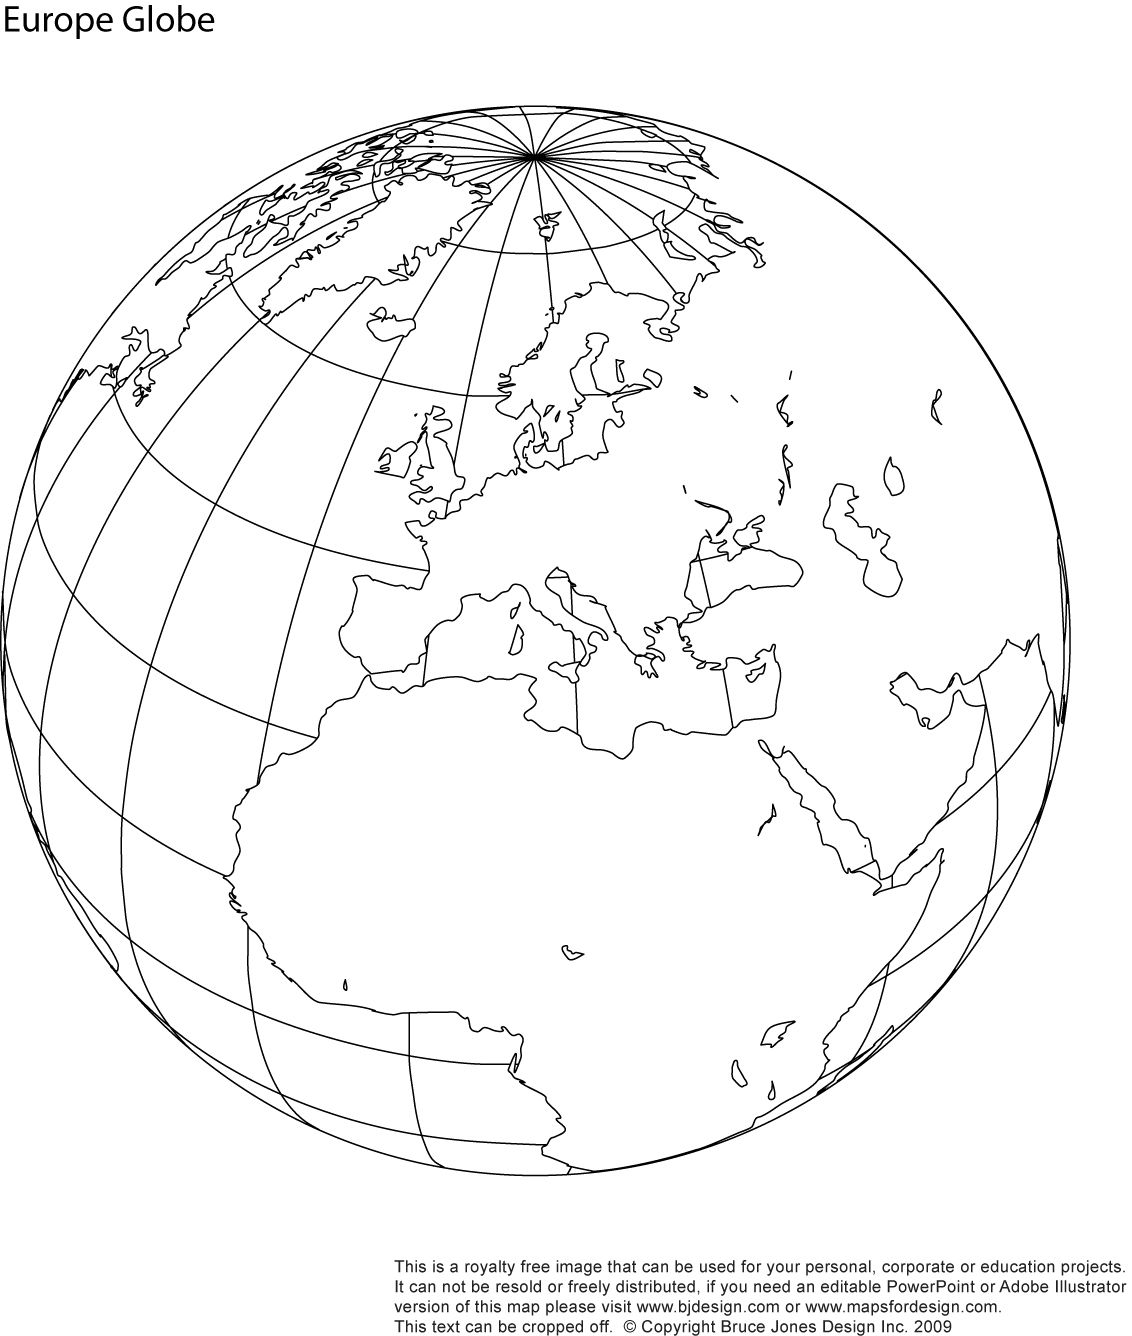 World globe showing North America, download and use for